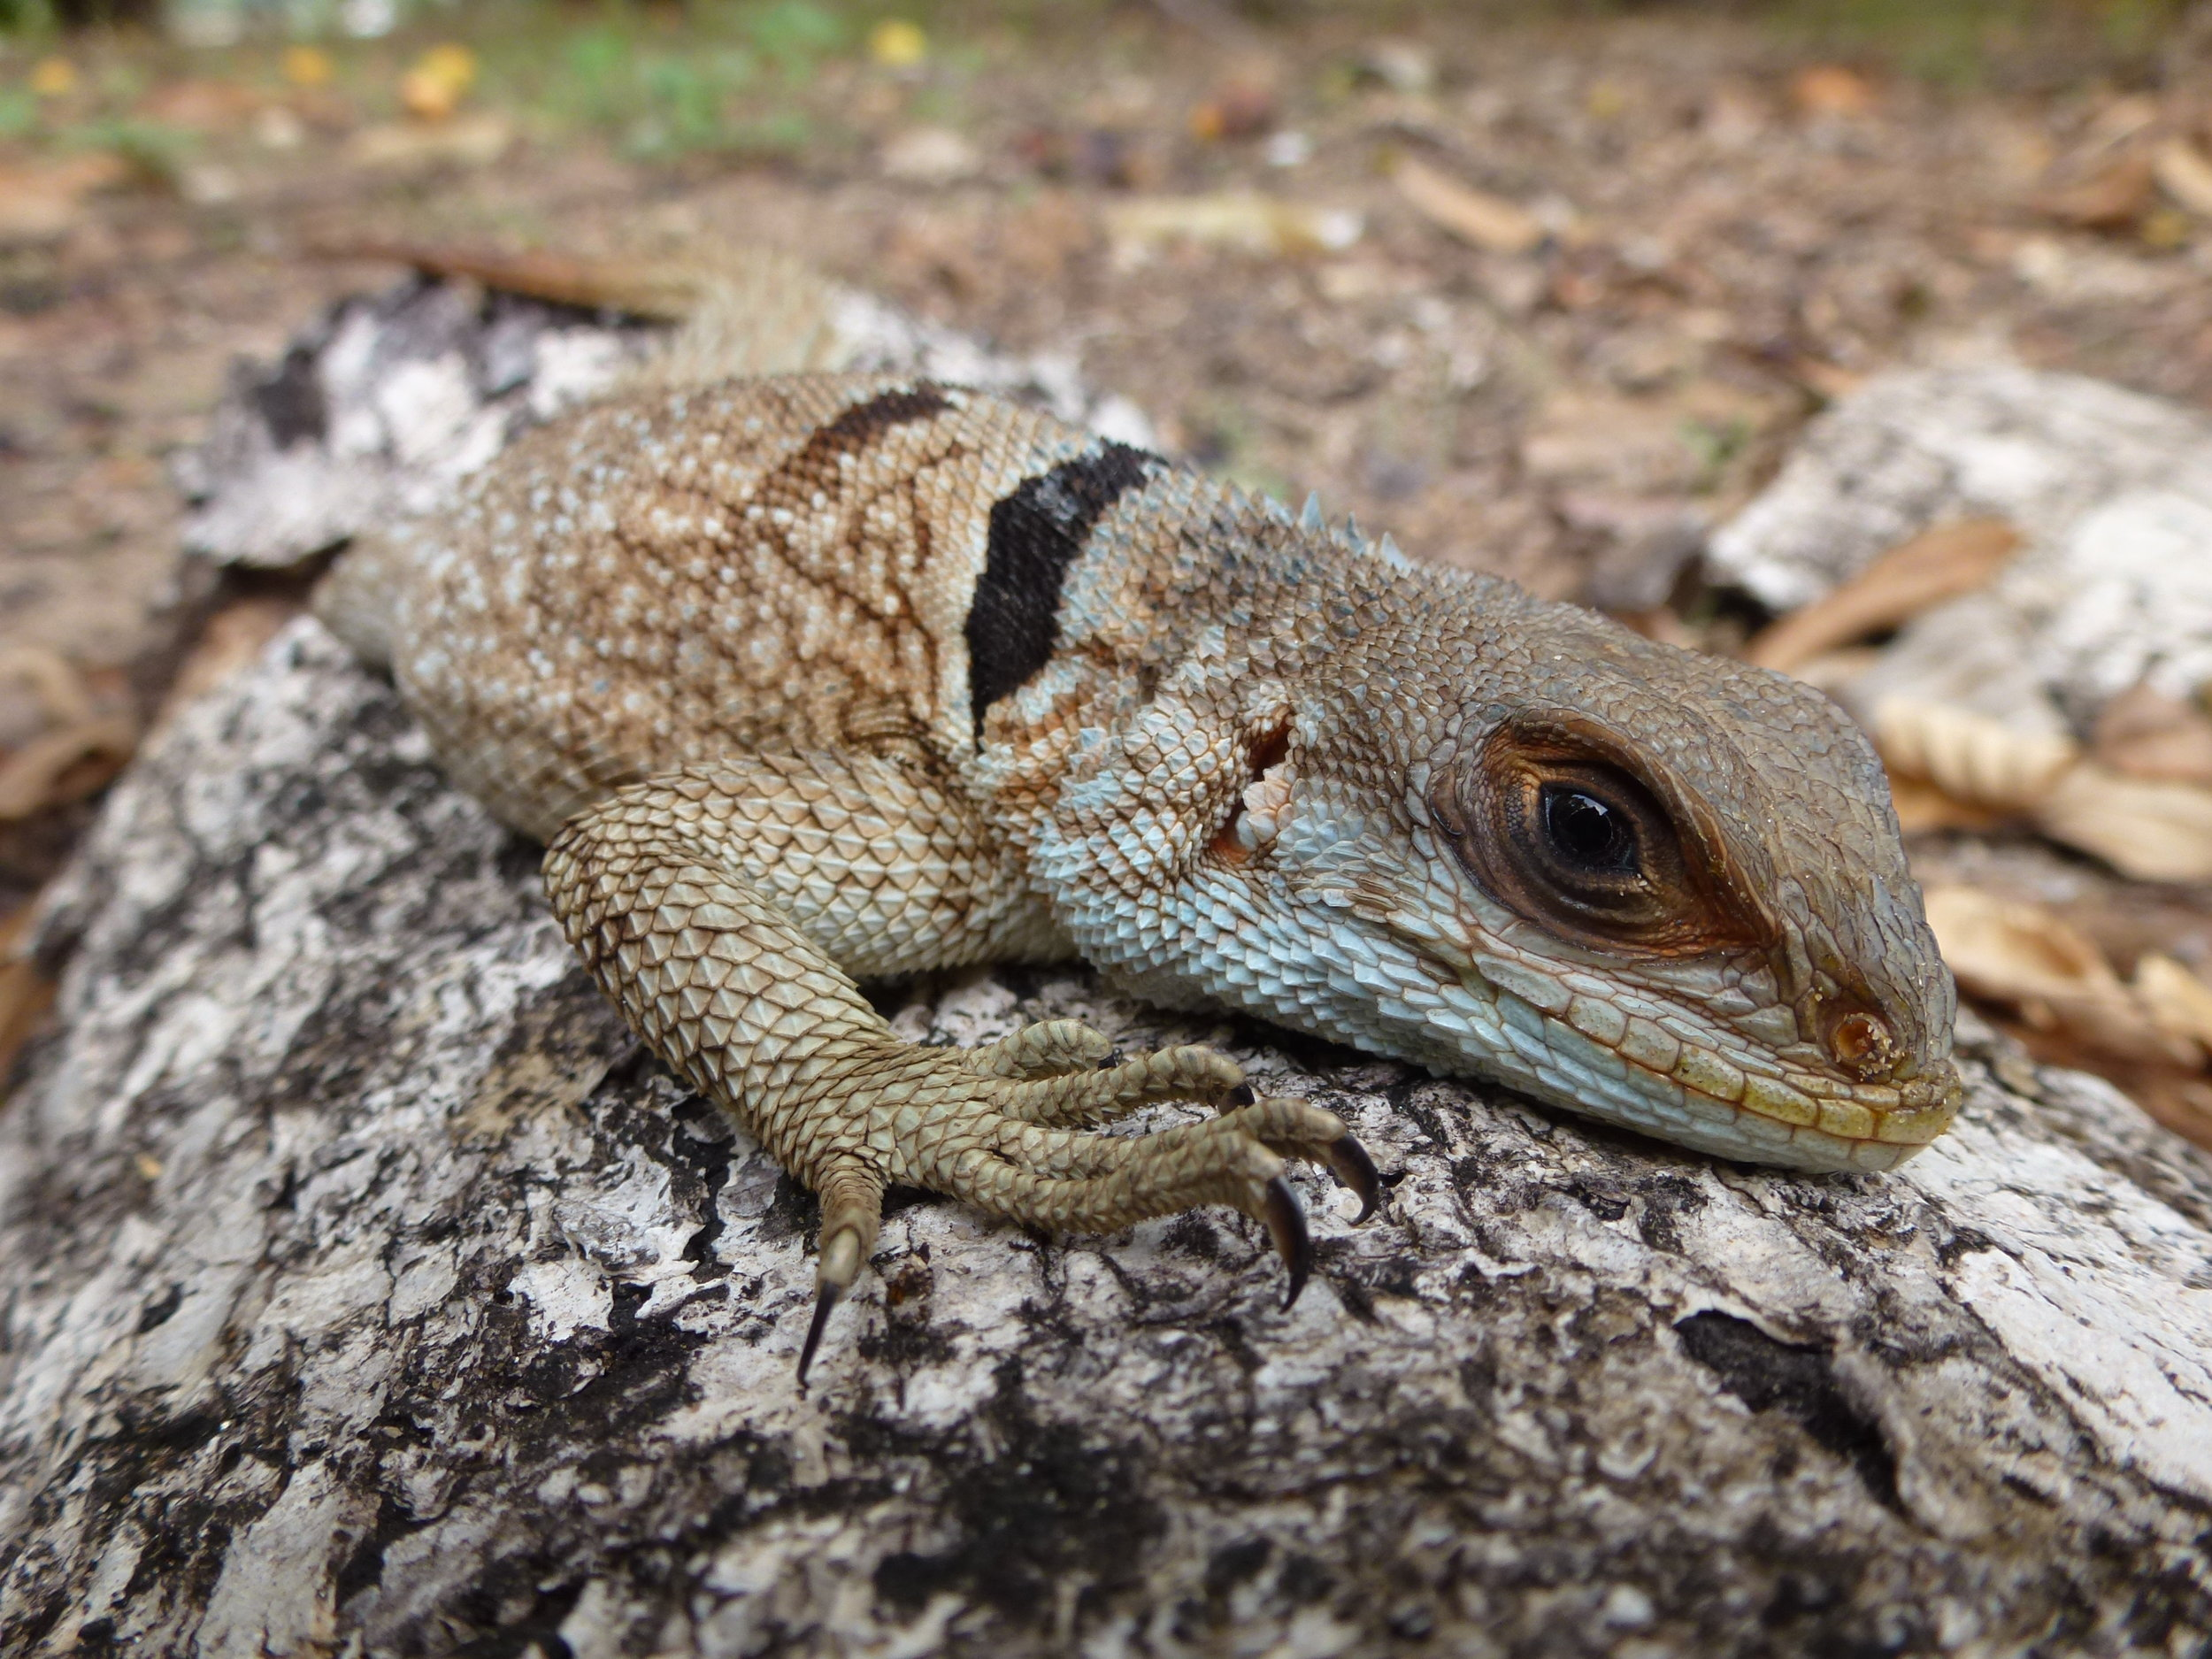 A collared iguana,  Oplurus cuvieri , one of 7 species of Iguanidae from Madagascar.